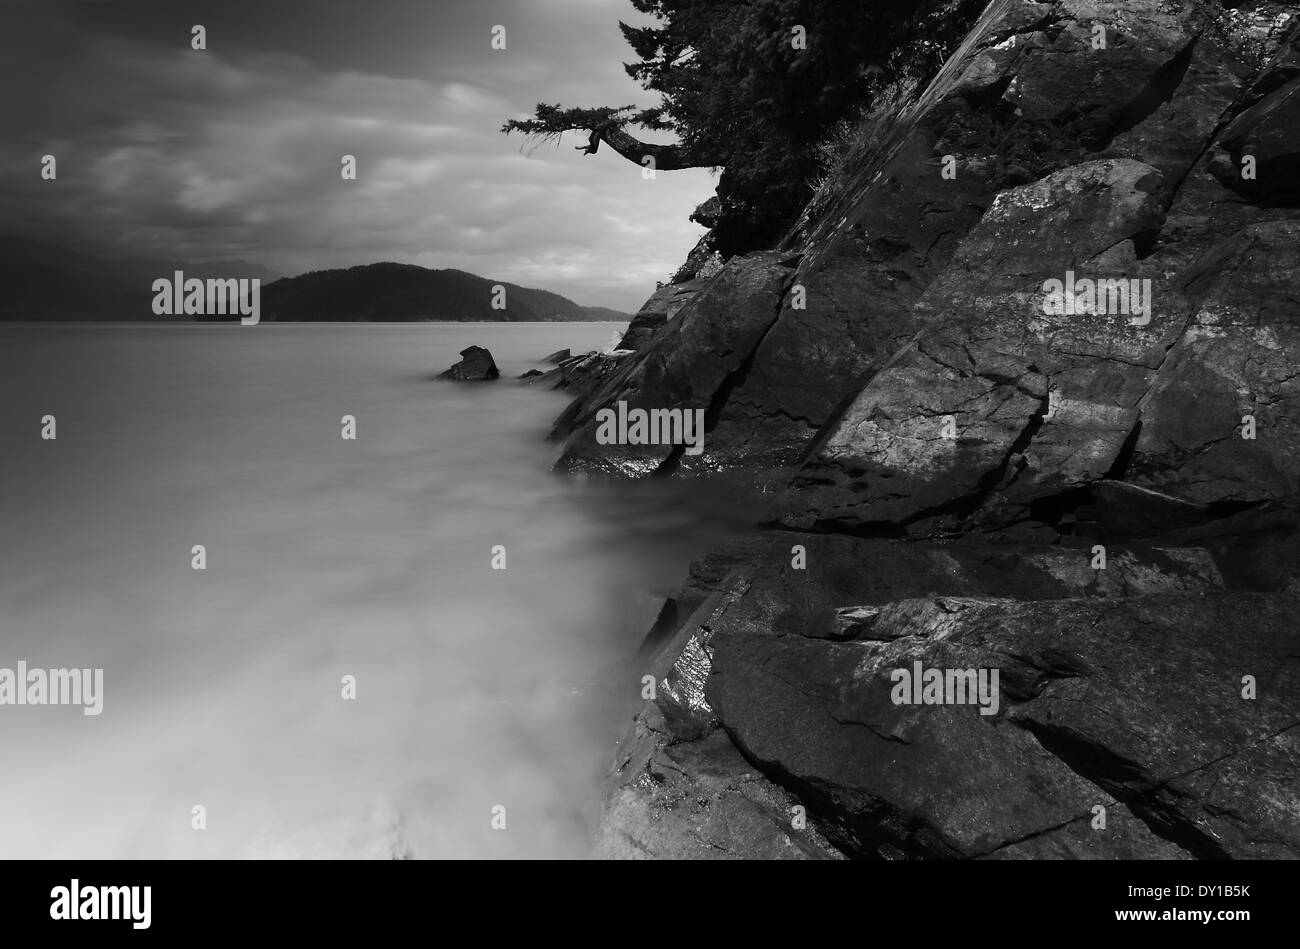 Creepy Landscape Stock Photo Alamy